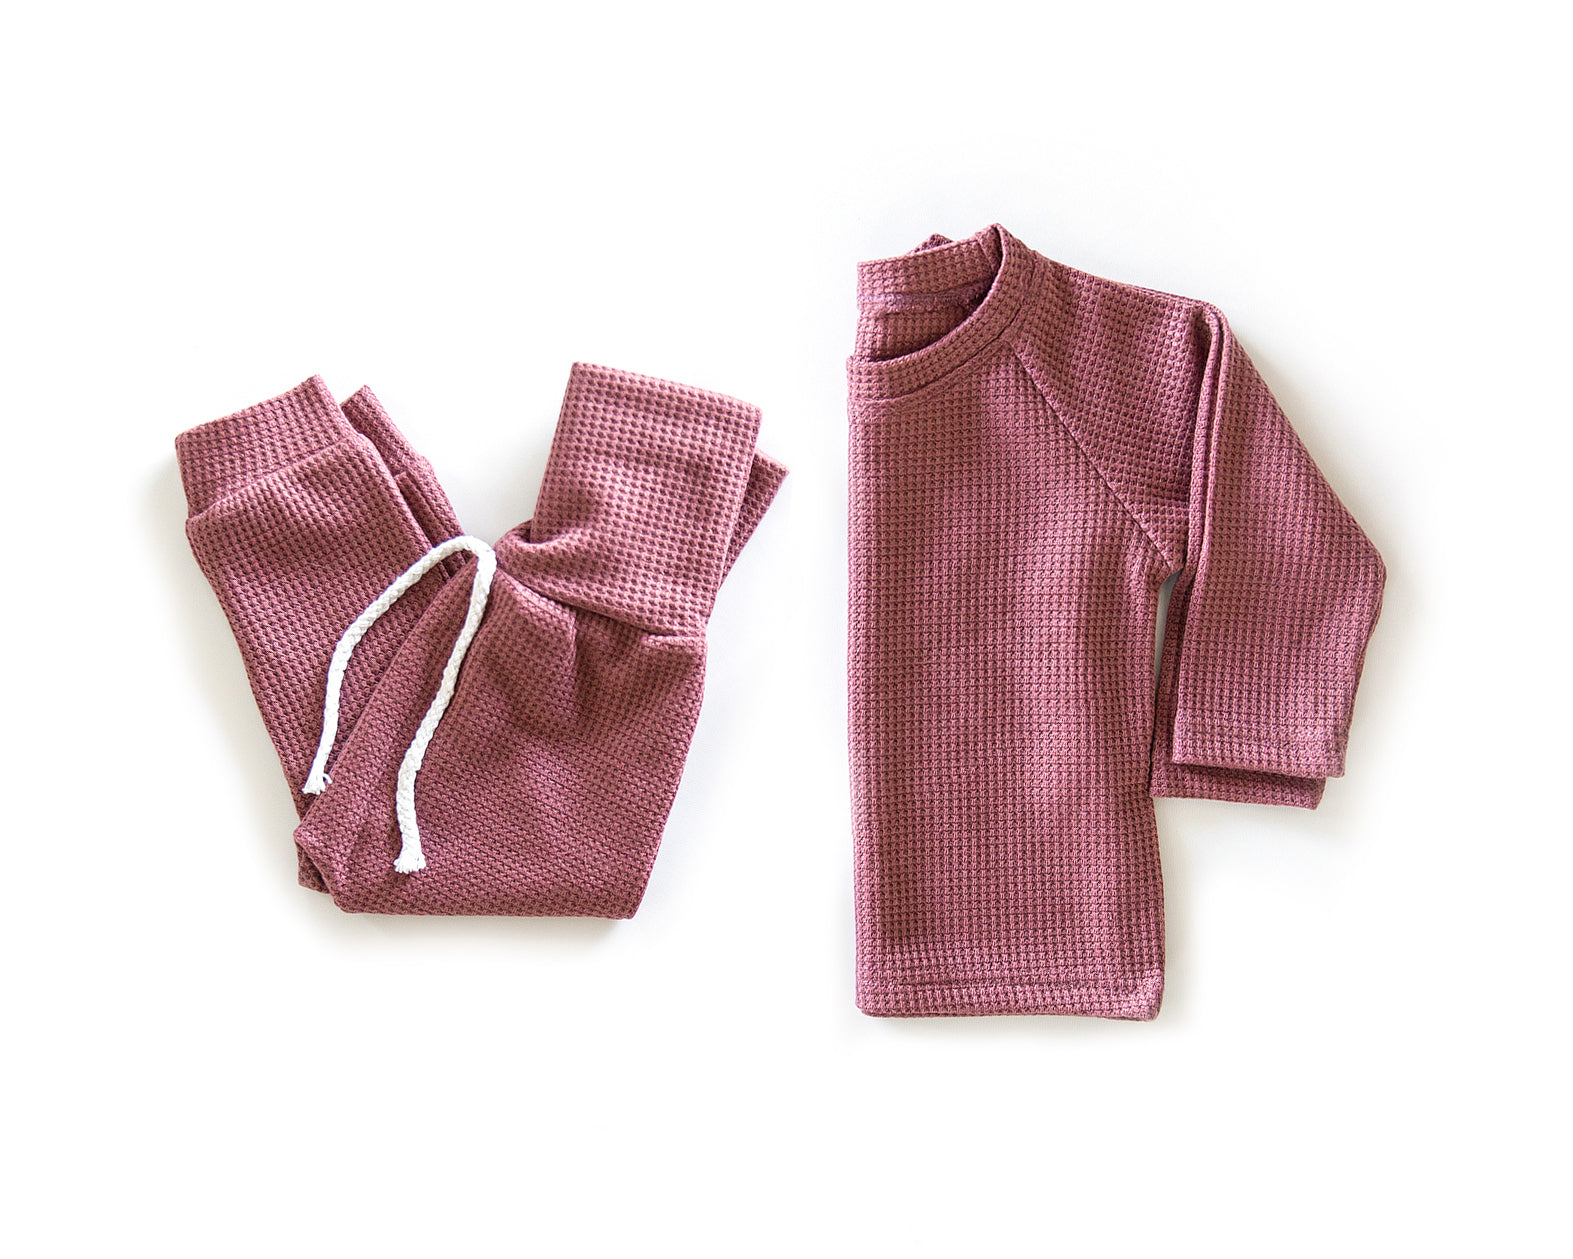 Waffle Knit Outfit in Maroon - Reverie Threads